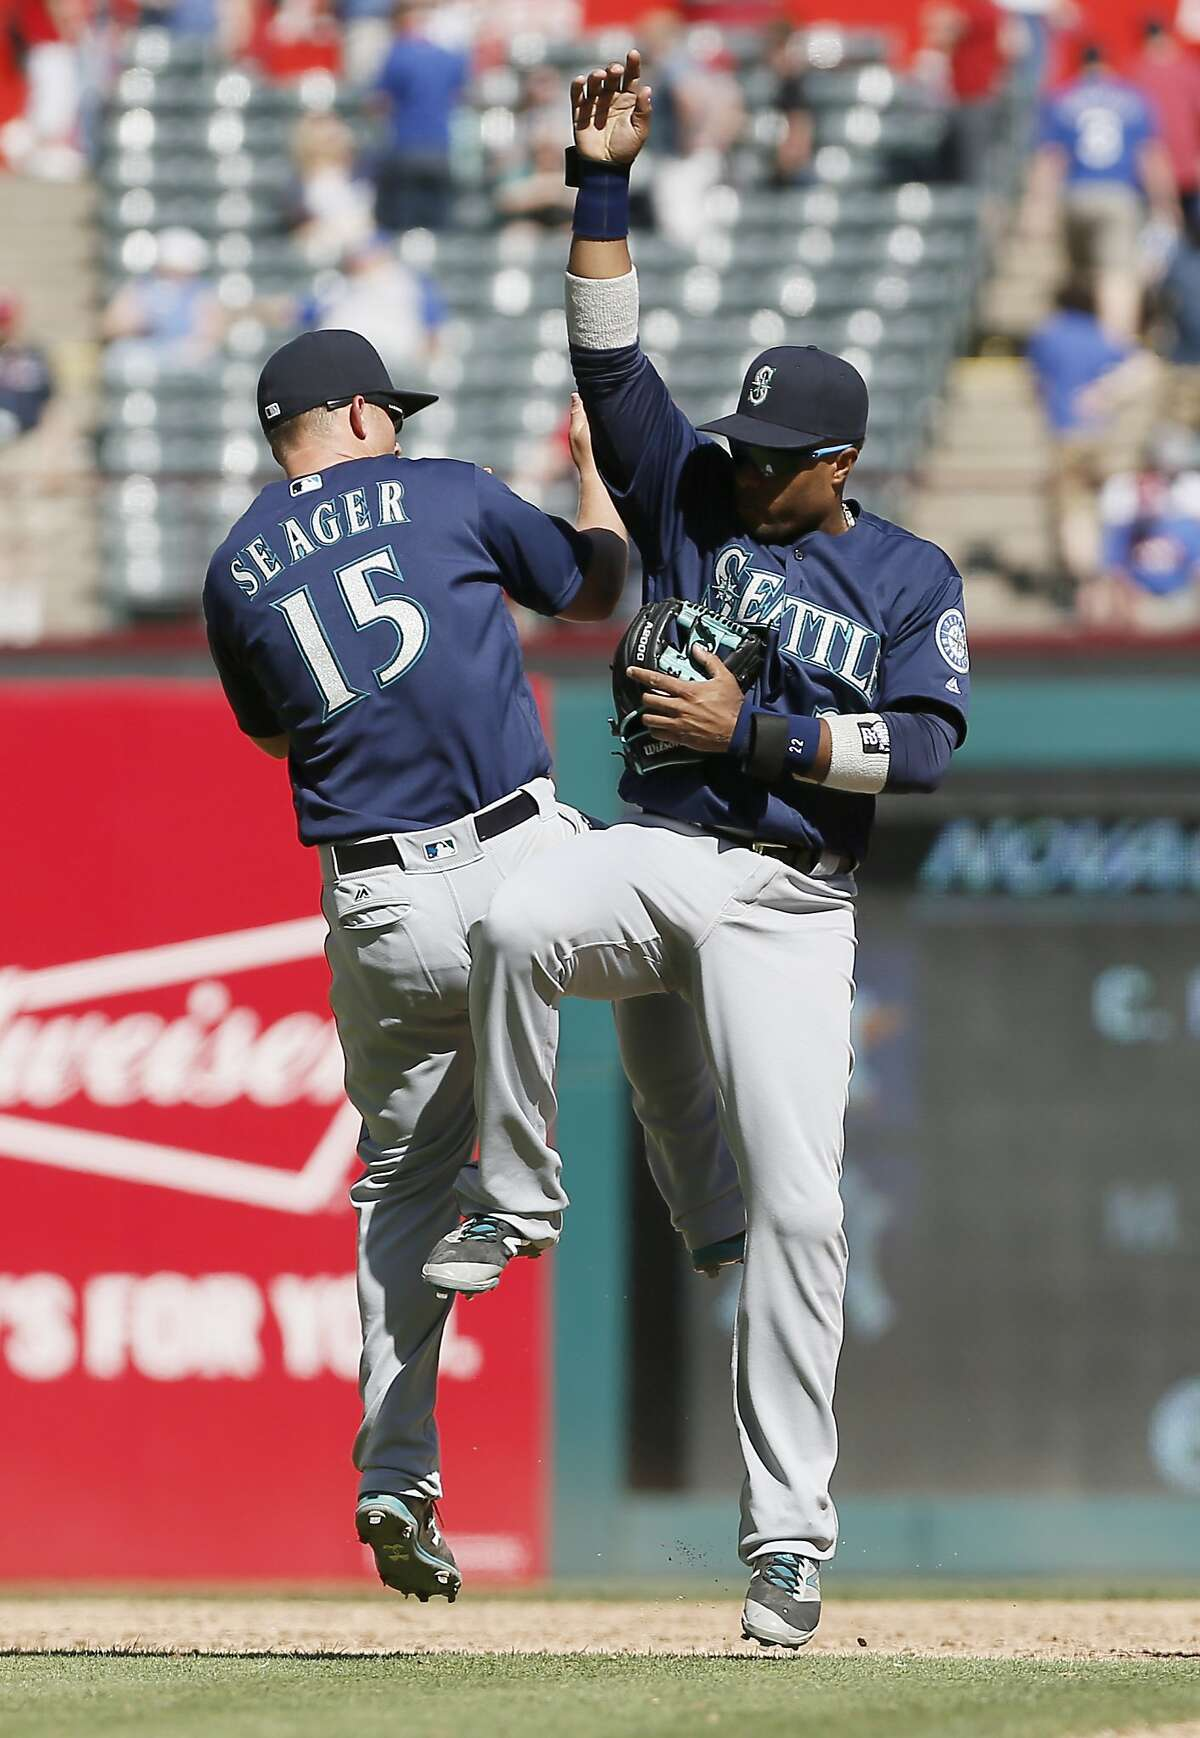 Seattle Mariners Kyle Seager (15) and Robinson Cano, right, celebrate a 9-5 win over the Texas Rangers after a baseball game, Wednesday, April 6, 2016, in Arlington, Texas. (AP Photo/Brandon Wade)